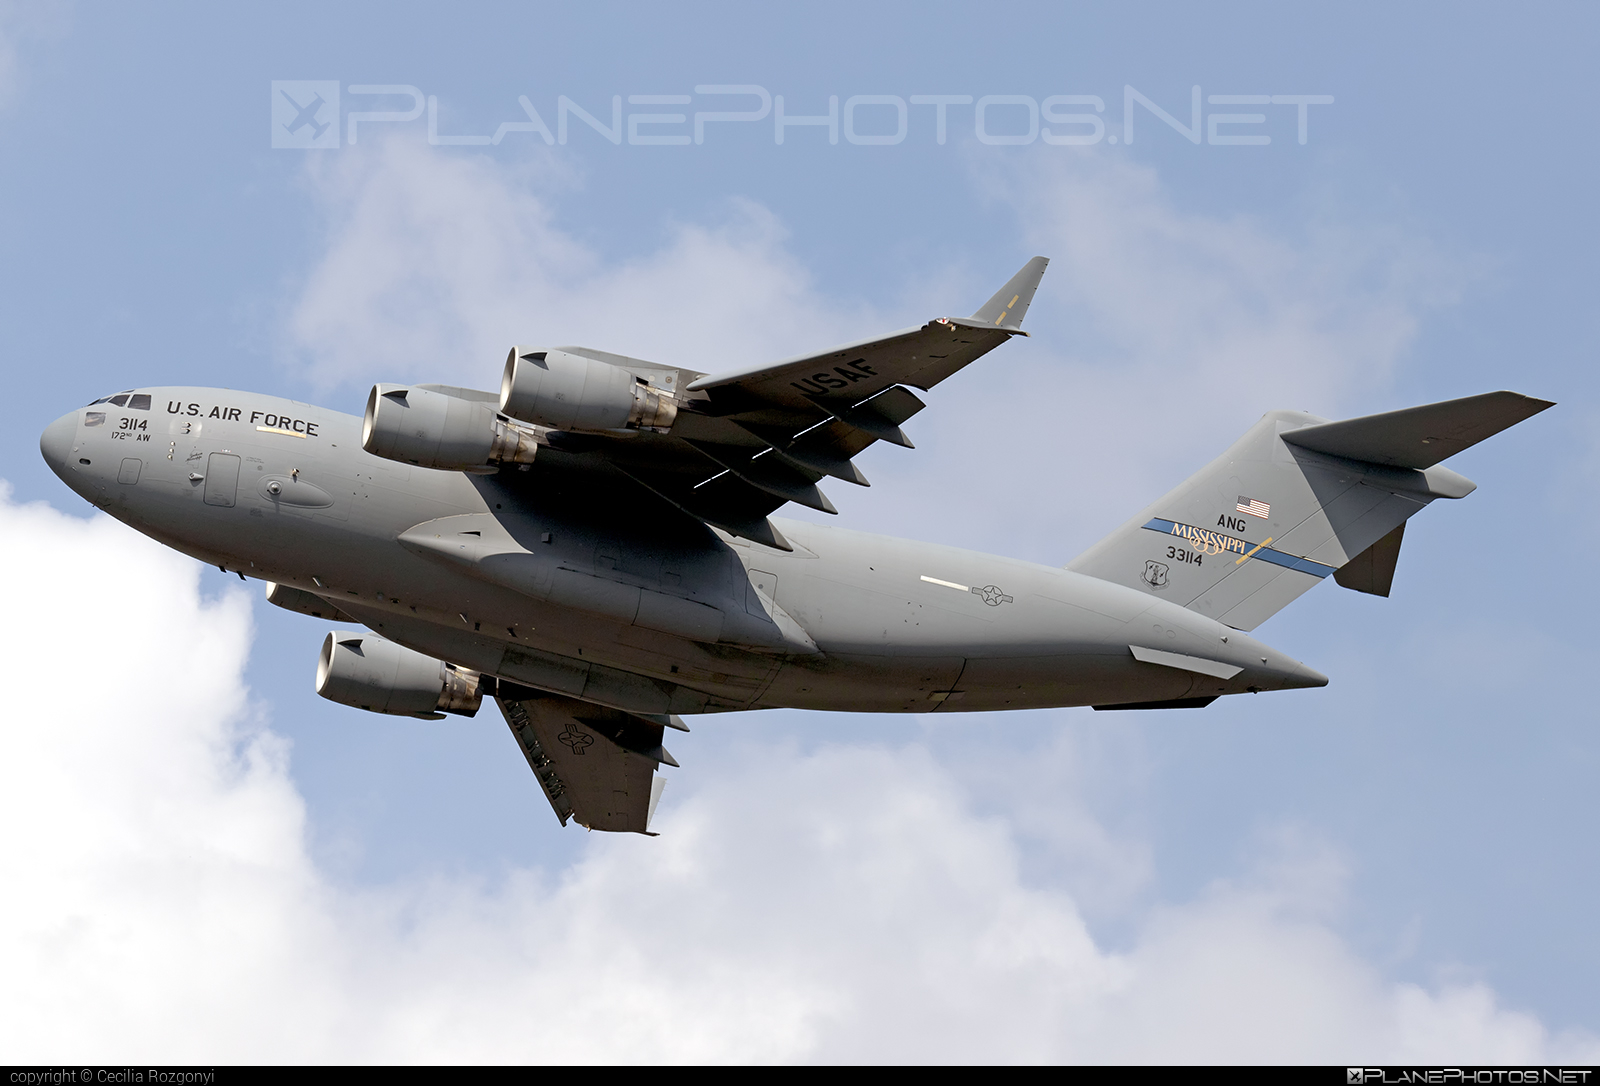 Boeing C-17A Globemaster III - 03-3114 operated by US Air Force (USAF) #boeing #c17 #c17globemaster #globemaster #globemasteriii #usaf #usairforce